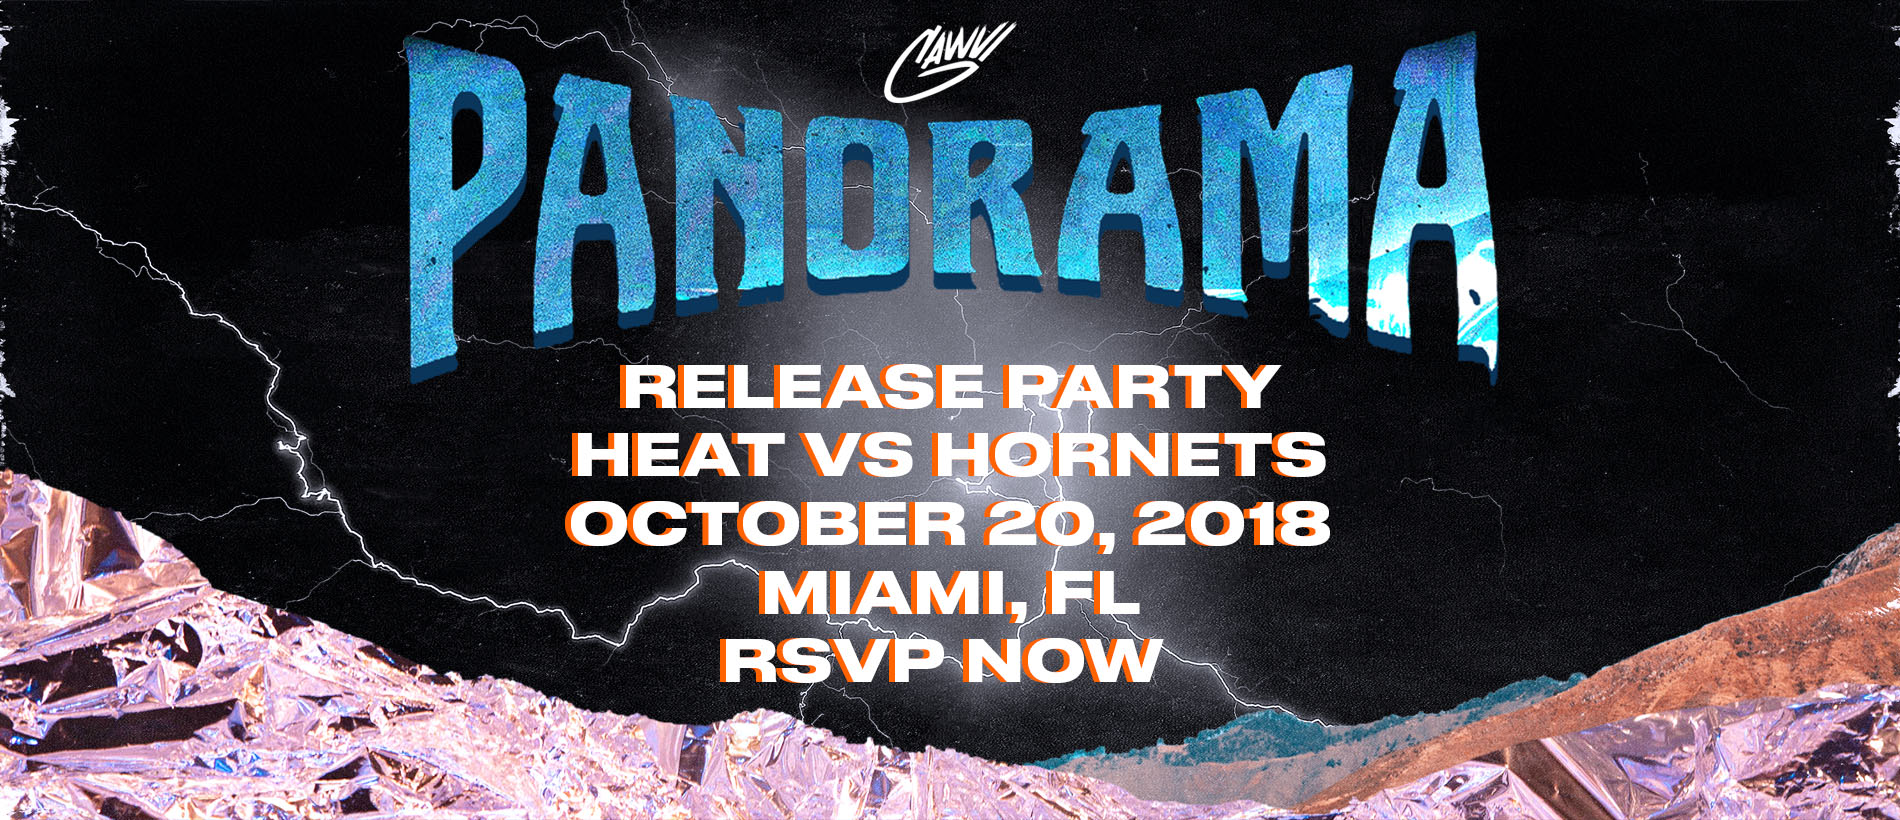 PANORAMA x Miami Heat Release Party